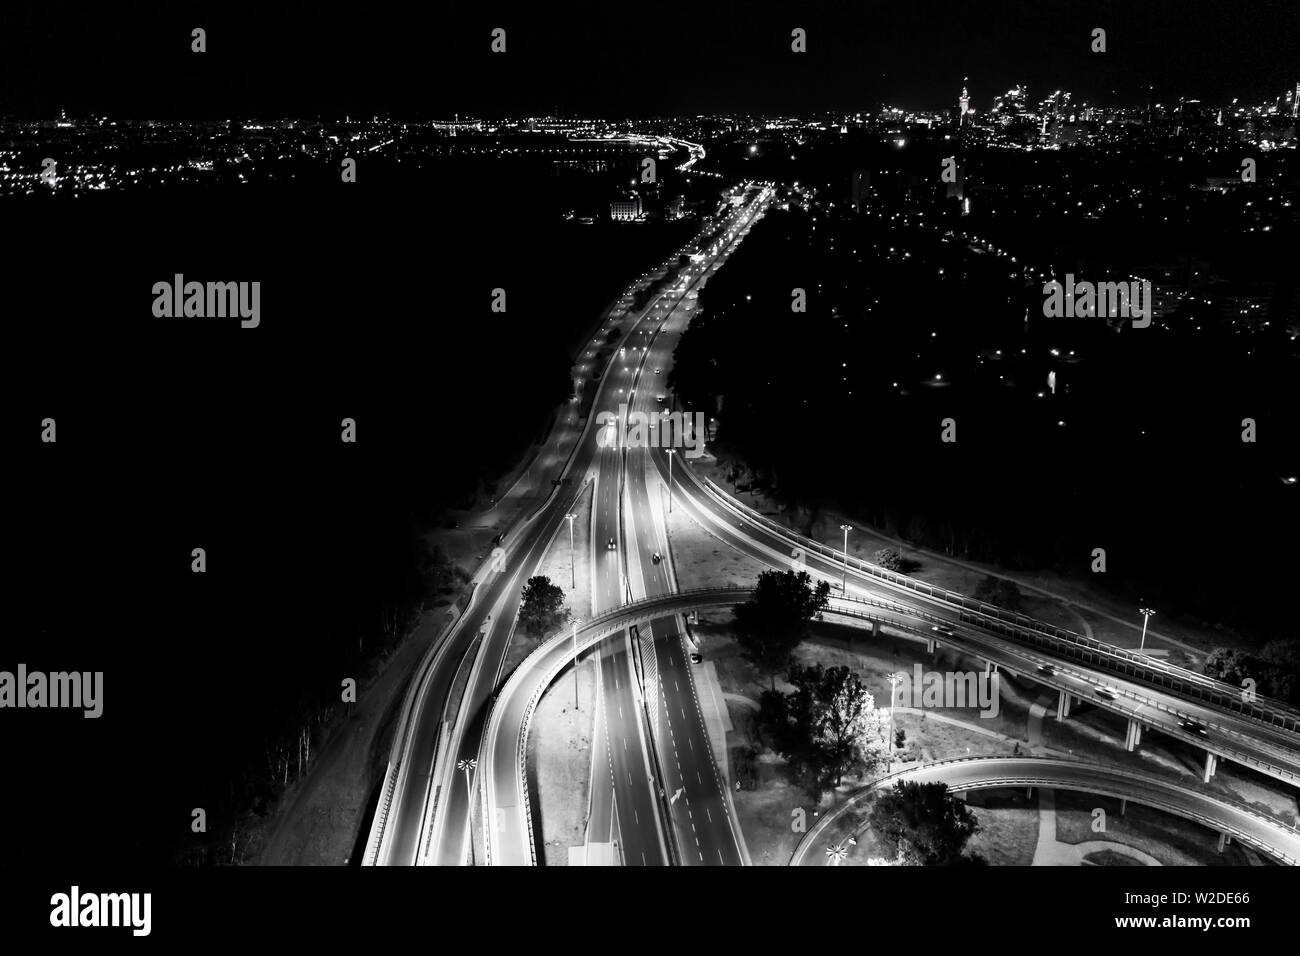 Aerial drone night shot of multilevel illuminated ring highway road junction leading to the sea. Black and White - Stock Image